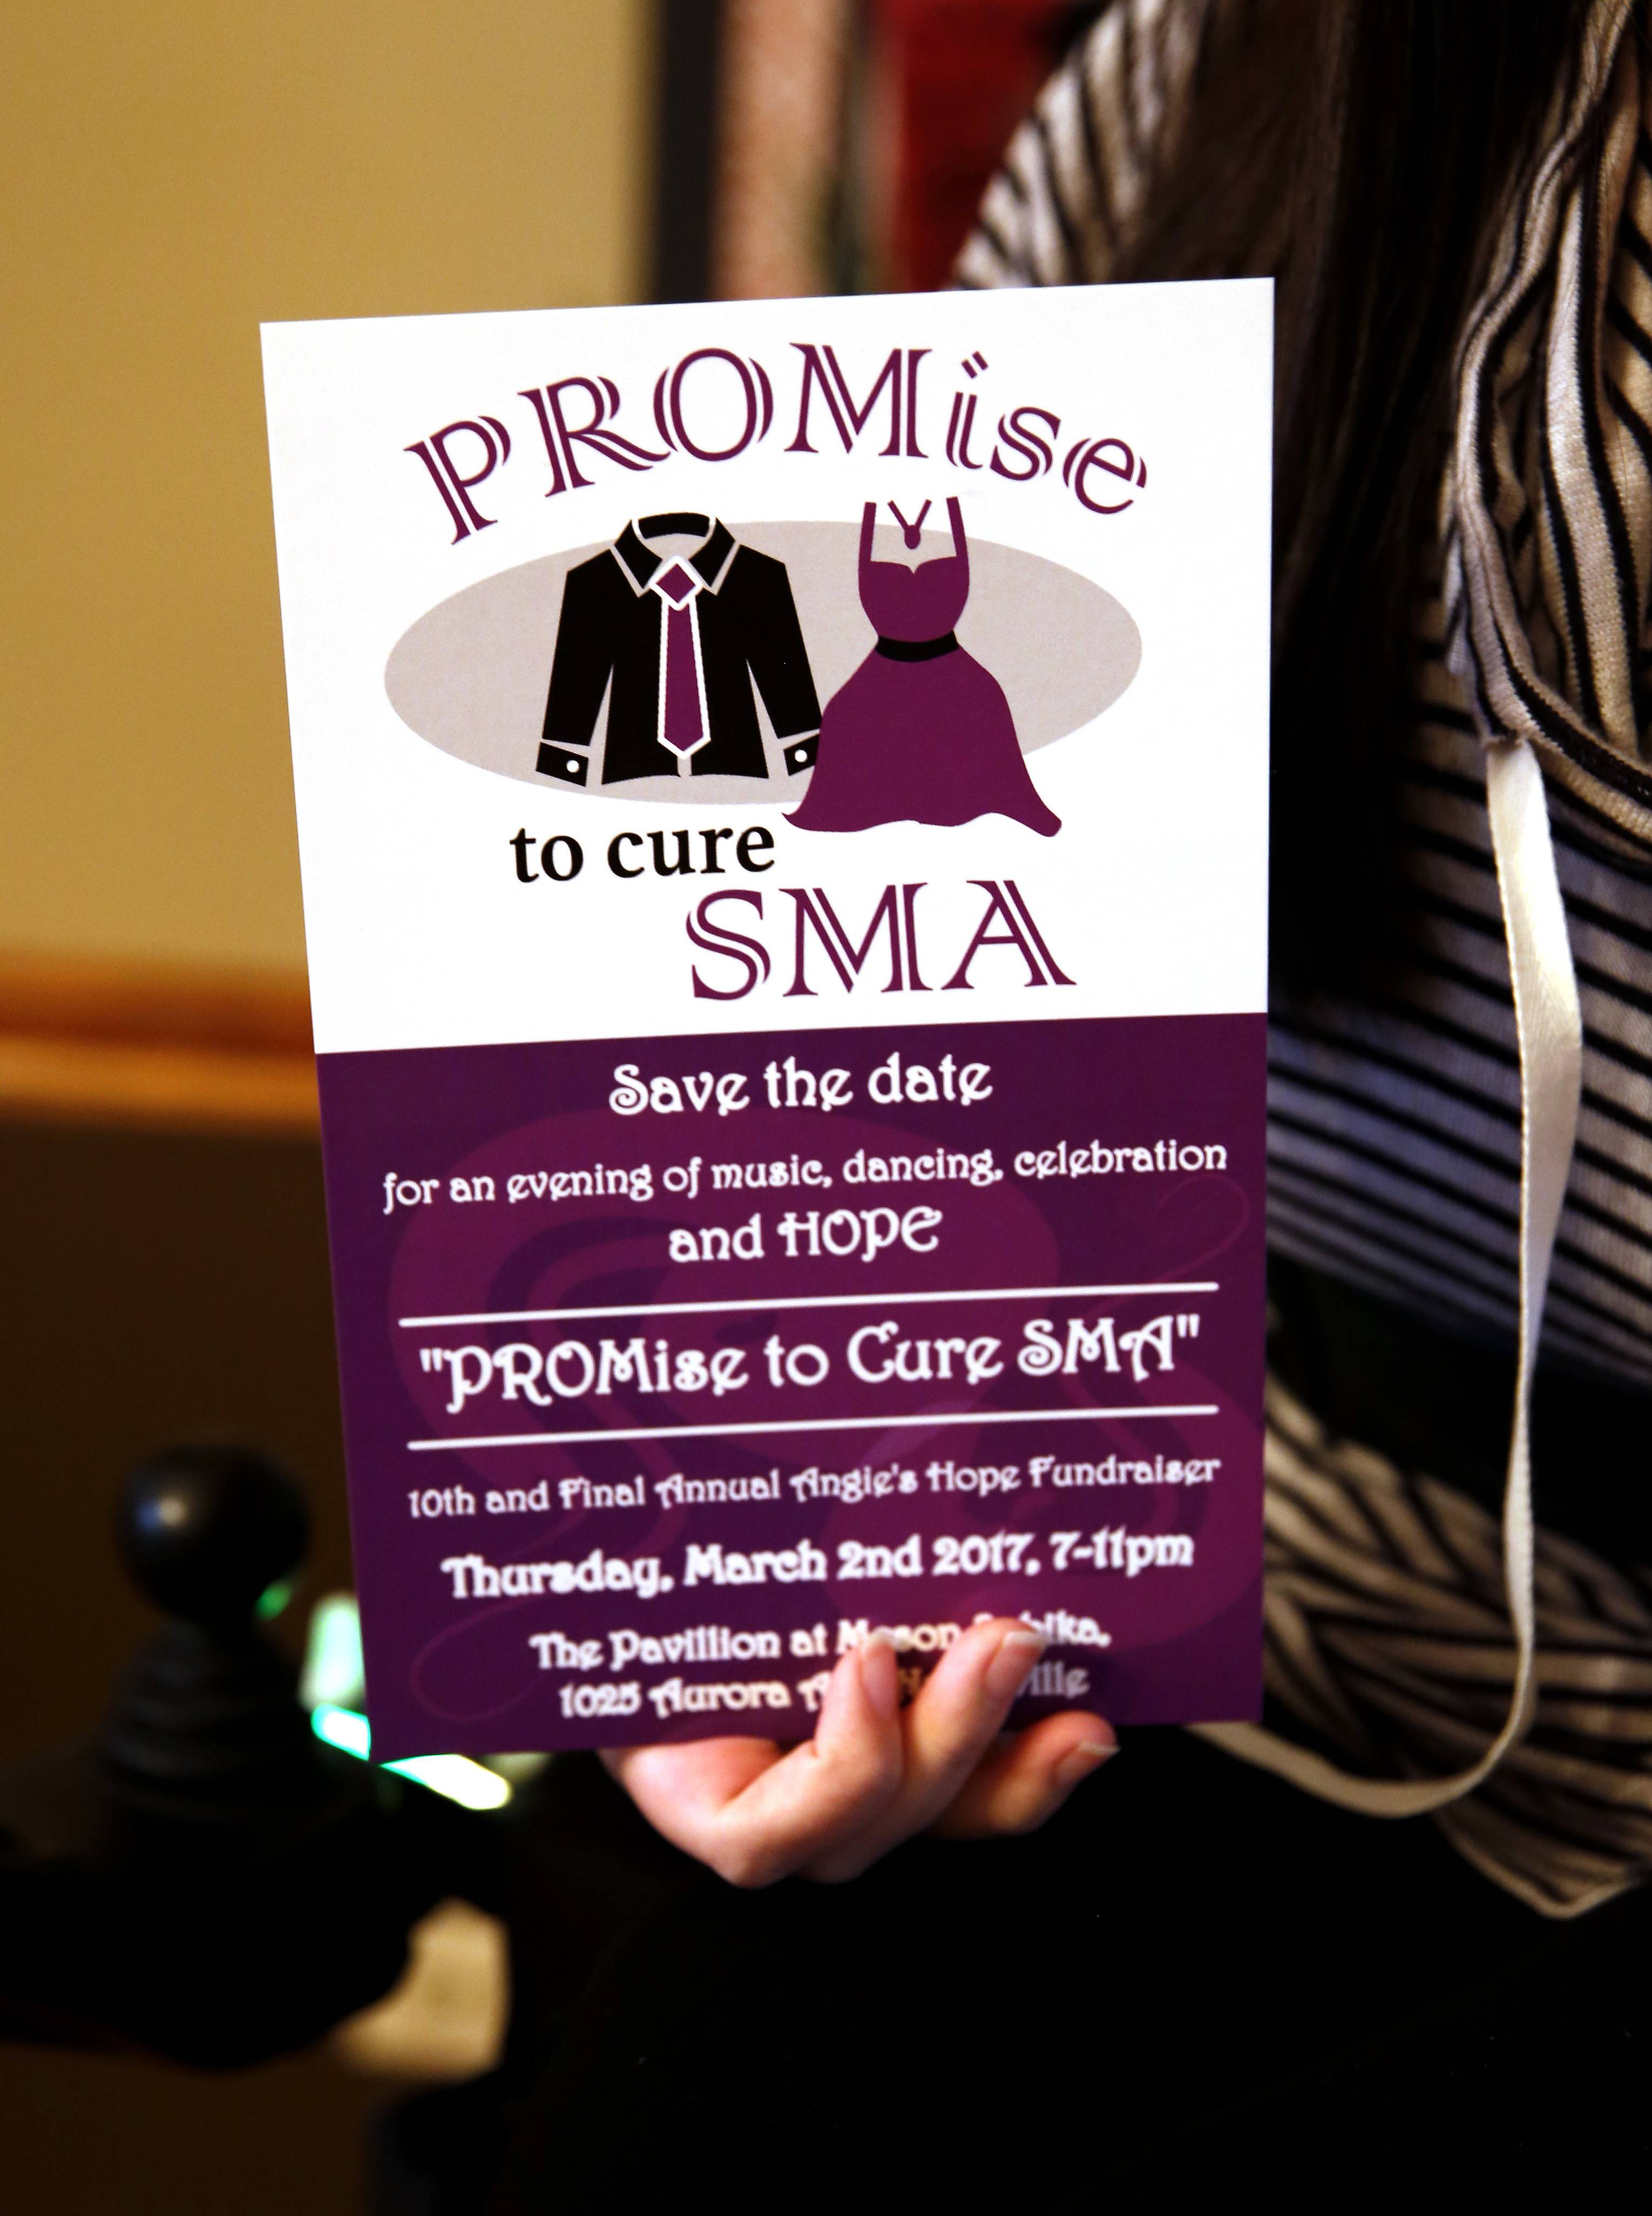 "Instead of a garage sale or a Big Ball Soccer Tournament, events the Naperville nonprofit Angie's Hope has hosted in the past, the group this year is hosting ""PROMise to Cure SMA"" on Thursday, March 2. The fundraiser celebrates 10 years of efforts to cure SMA and the recent FDA approval of the first drug to treat the degenerative disease."